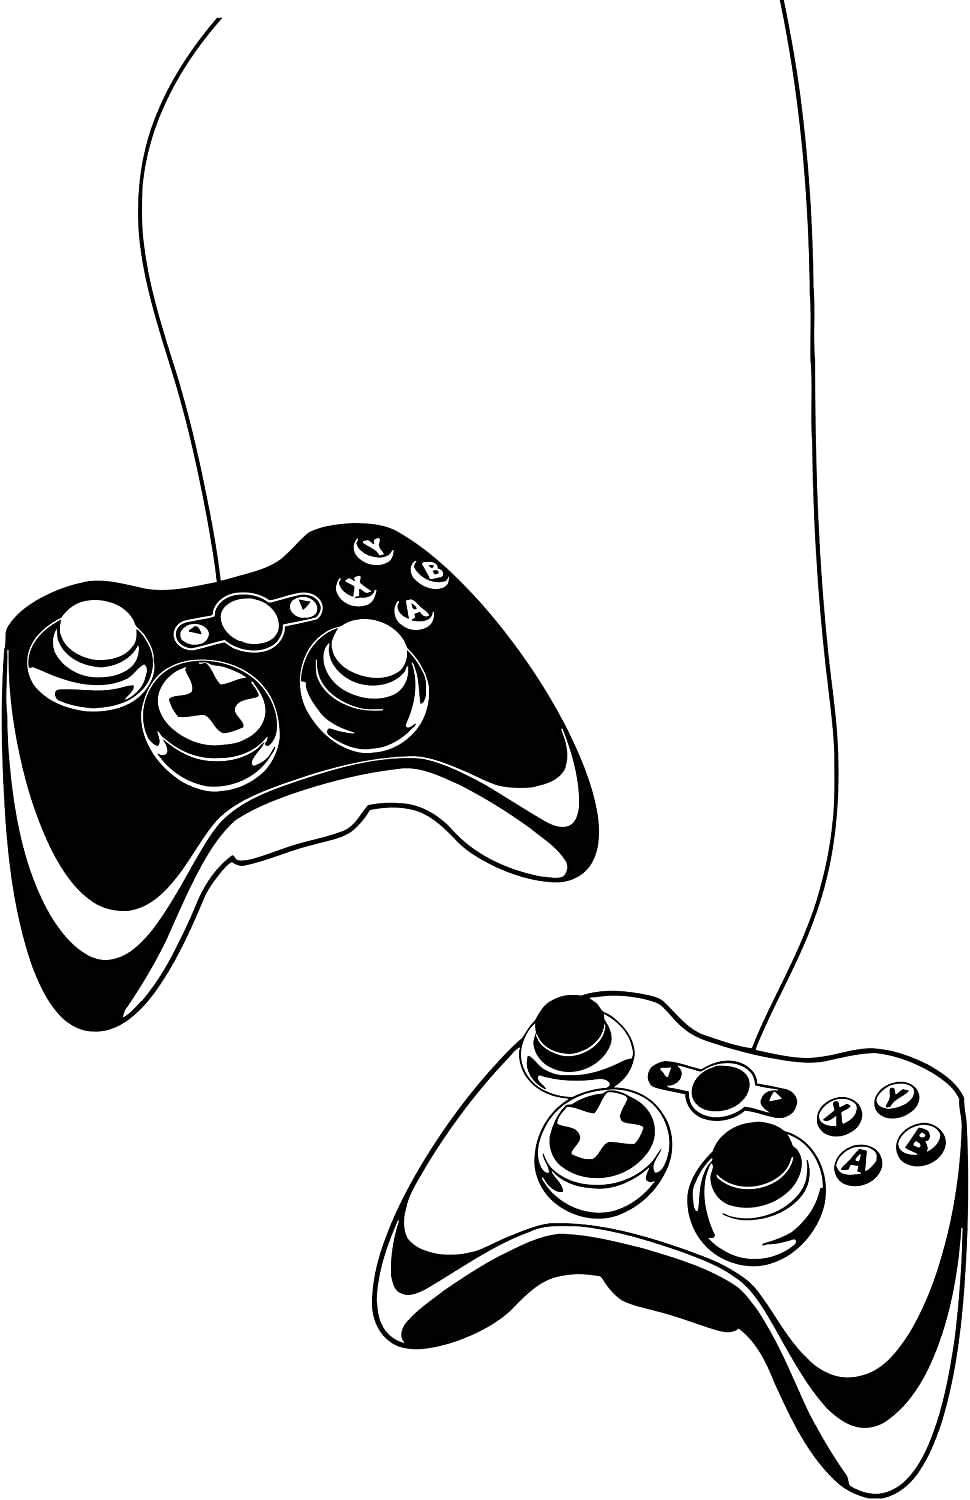 Wall Decal Gamer Gaming Joystick Vinyl Art Kids Room Large Decor z4909 (28 in X 43 in)